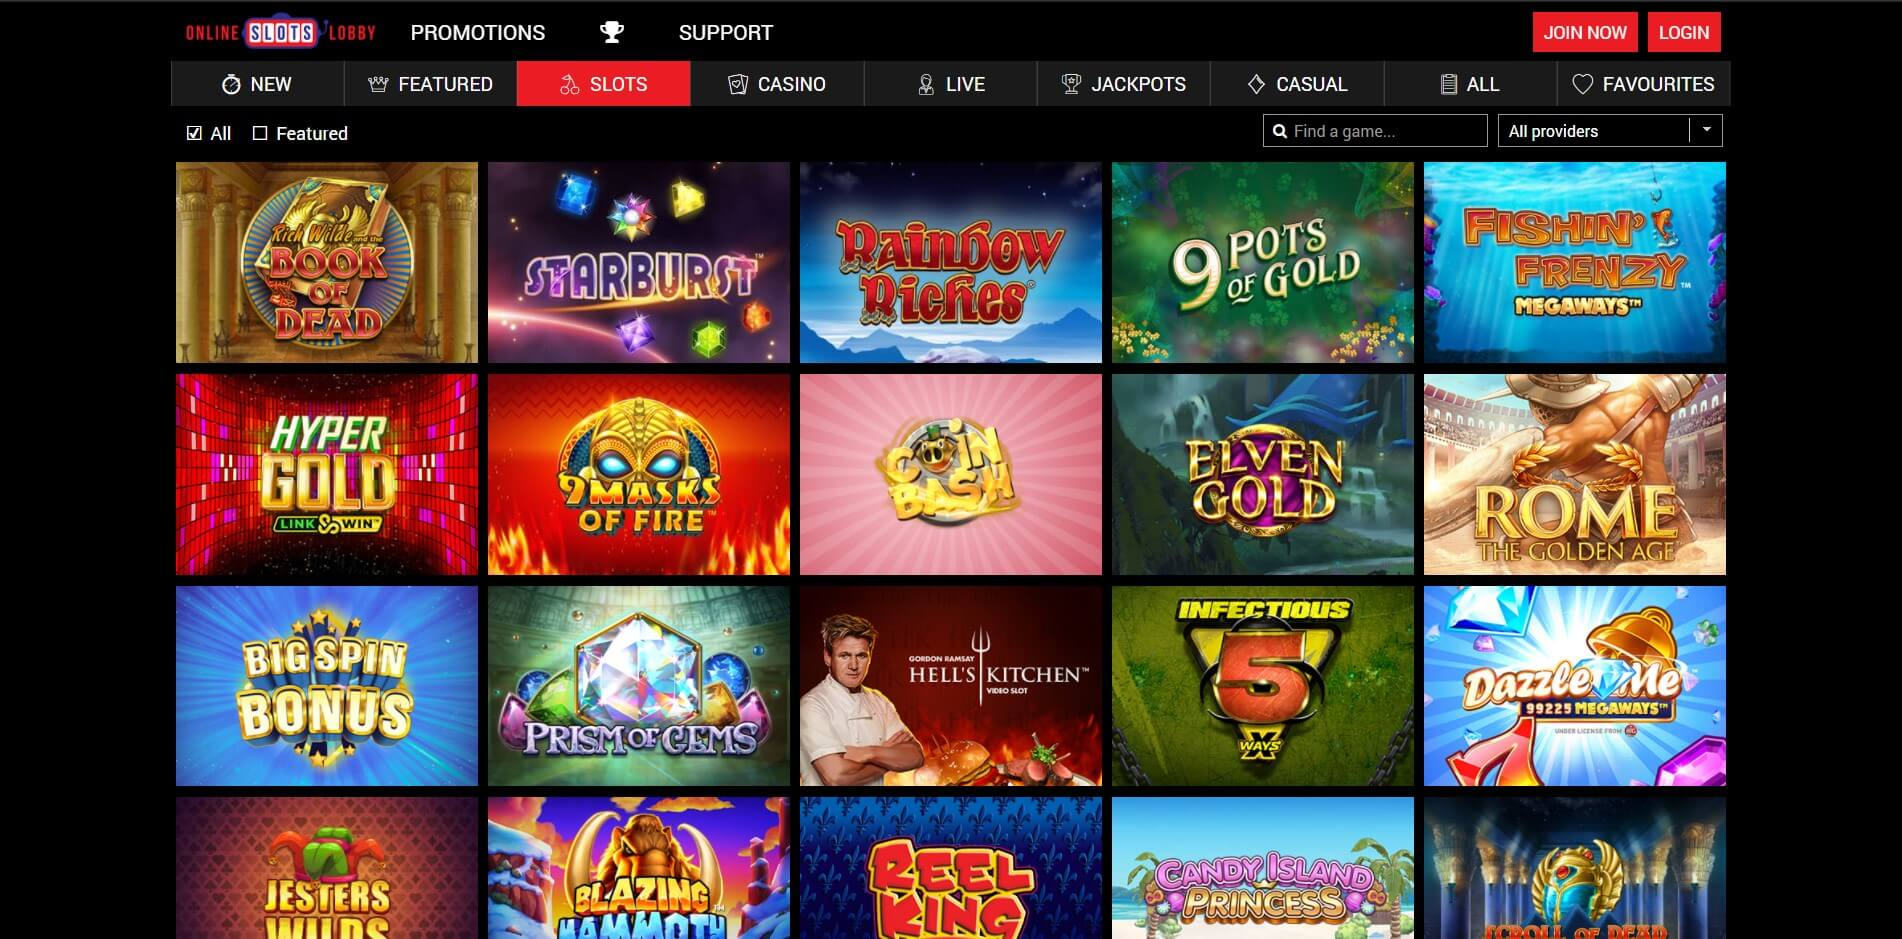 Games at OnlineSlotsLobby Casino